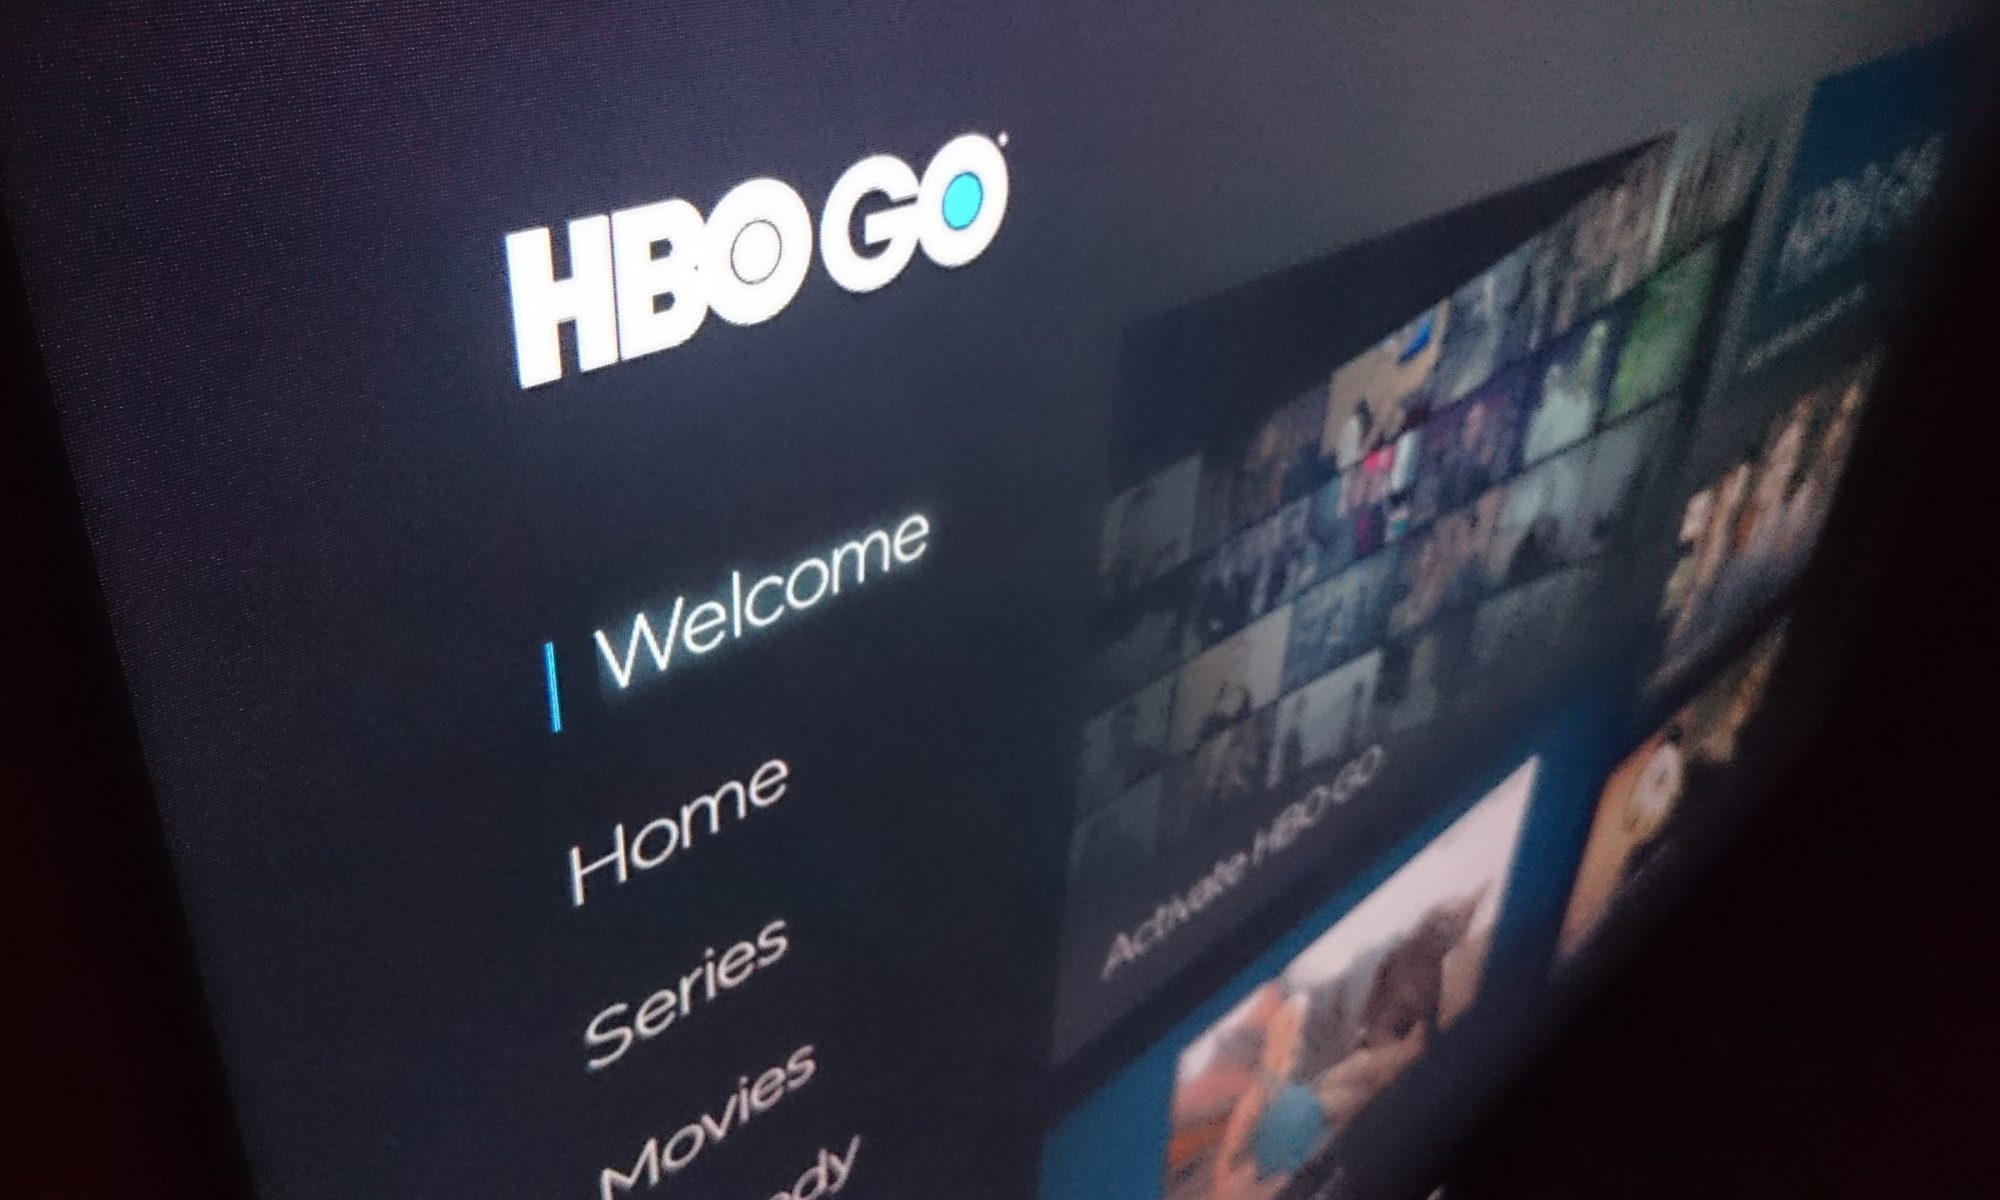 Samsung Will Add A Subscription To HBO Go, Kuki And Voyo To The New